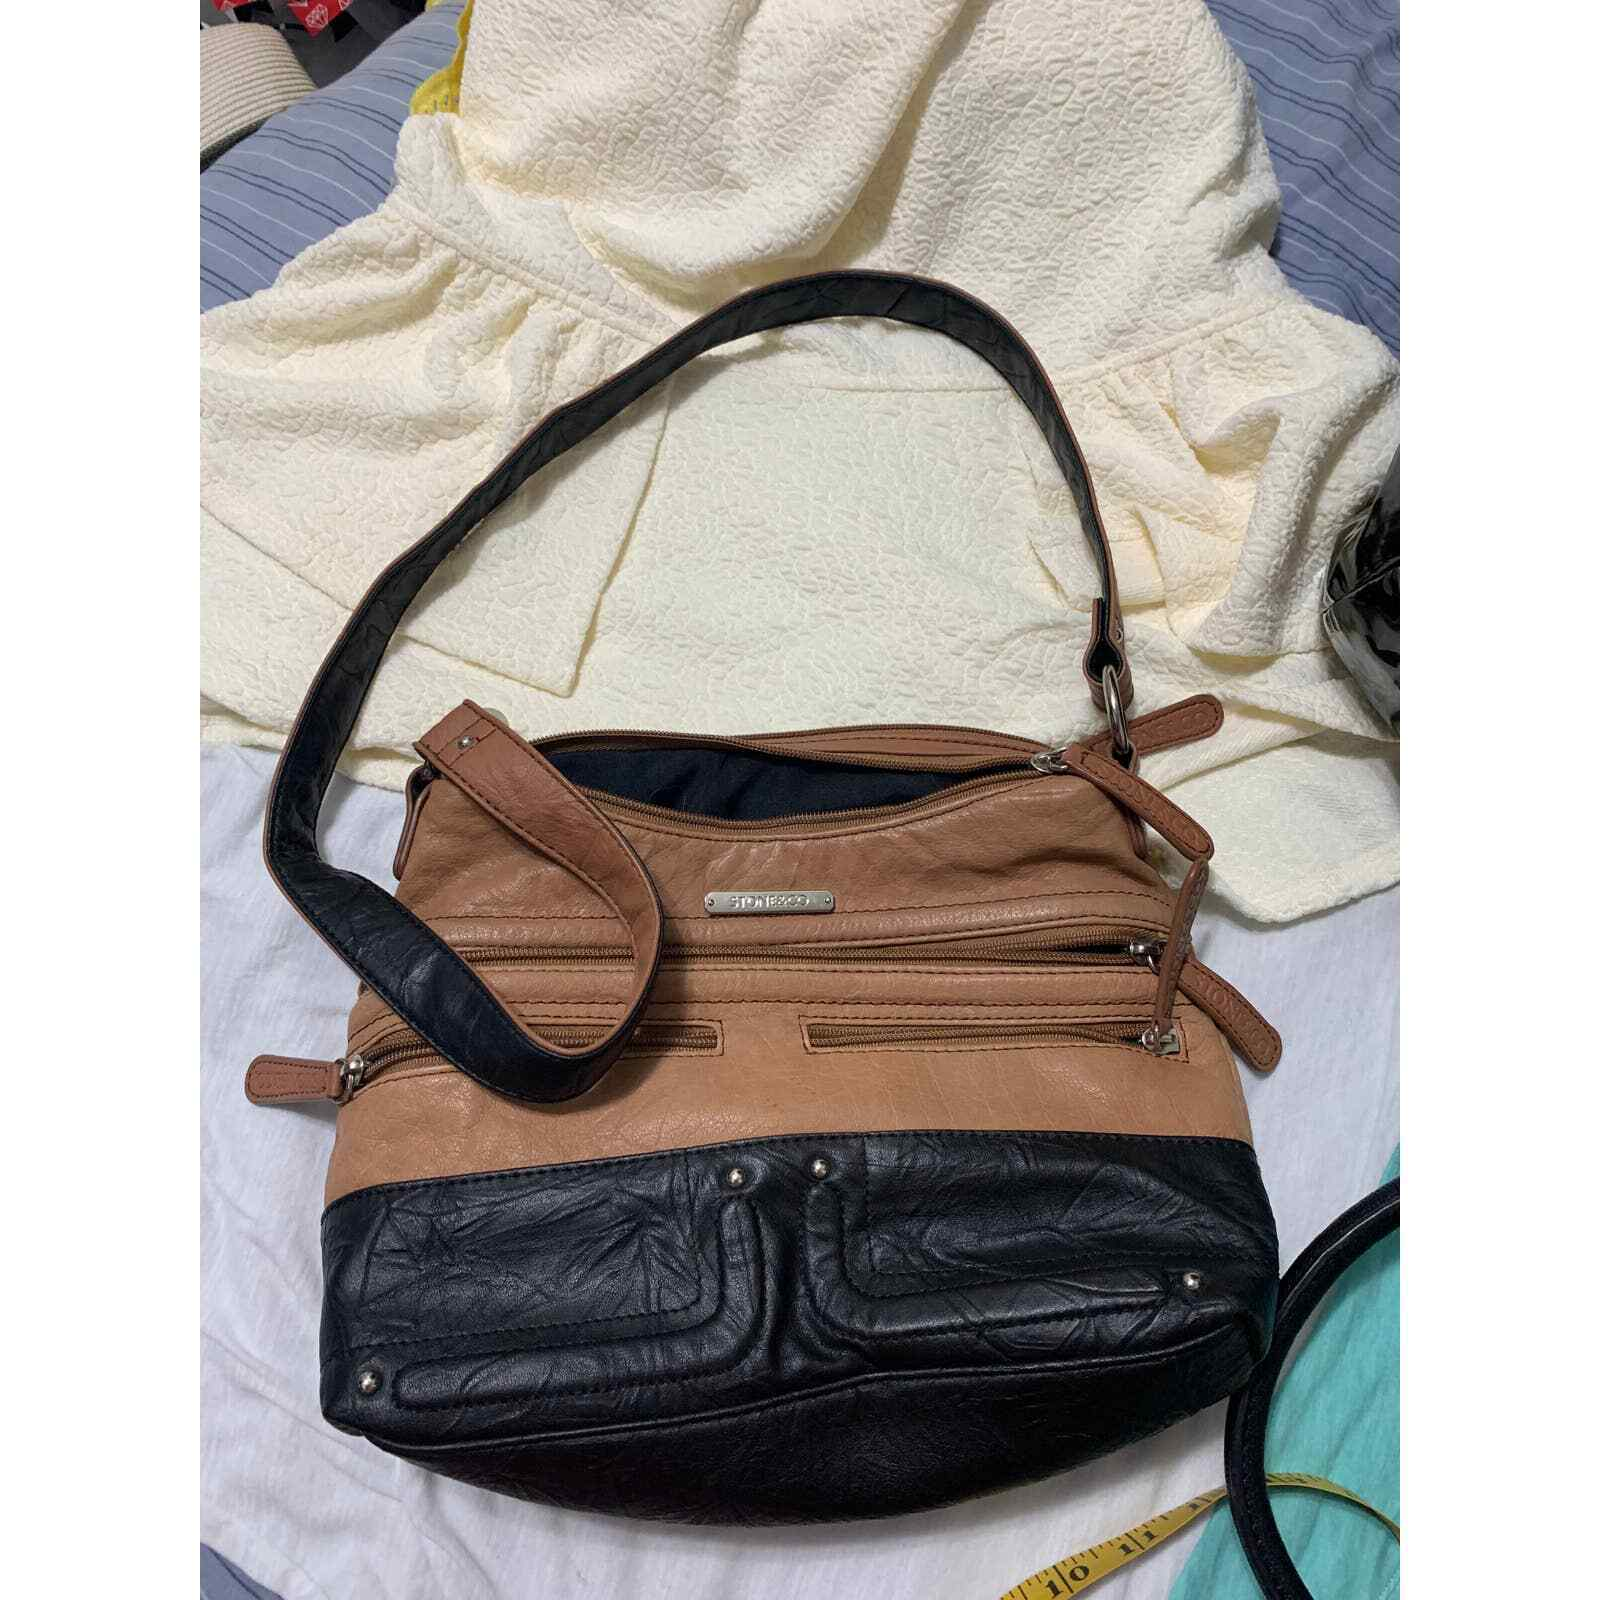 Stone & Co black/brown leather purse